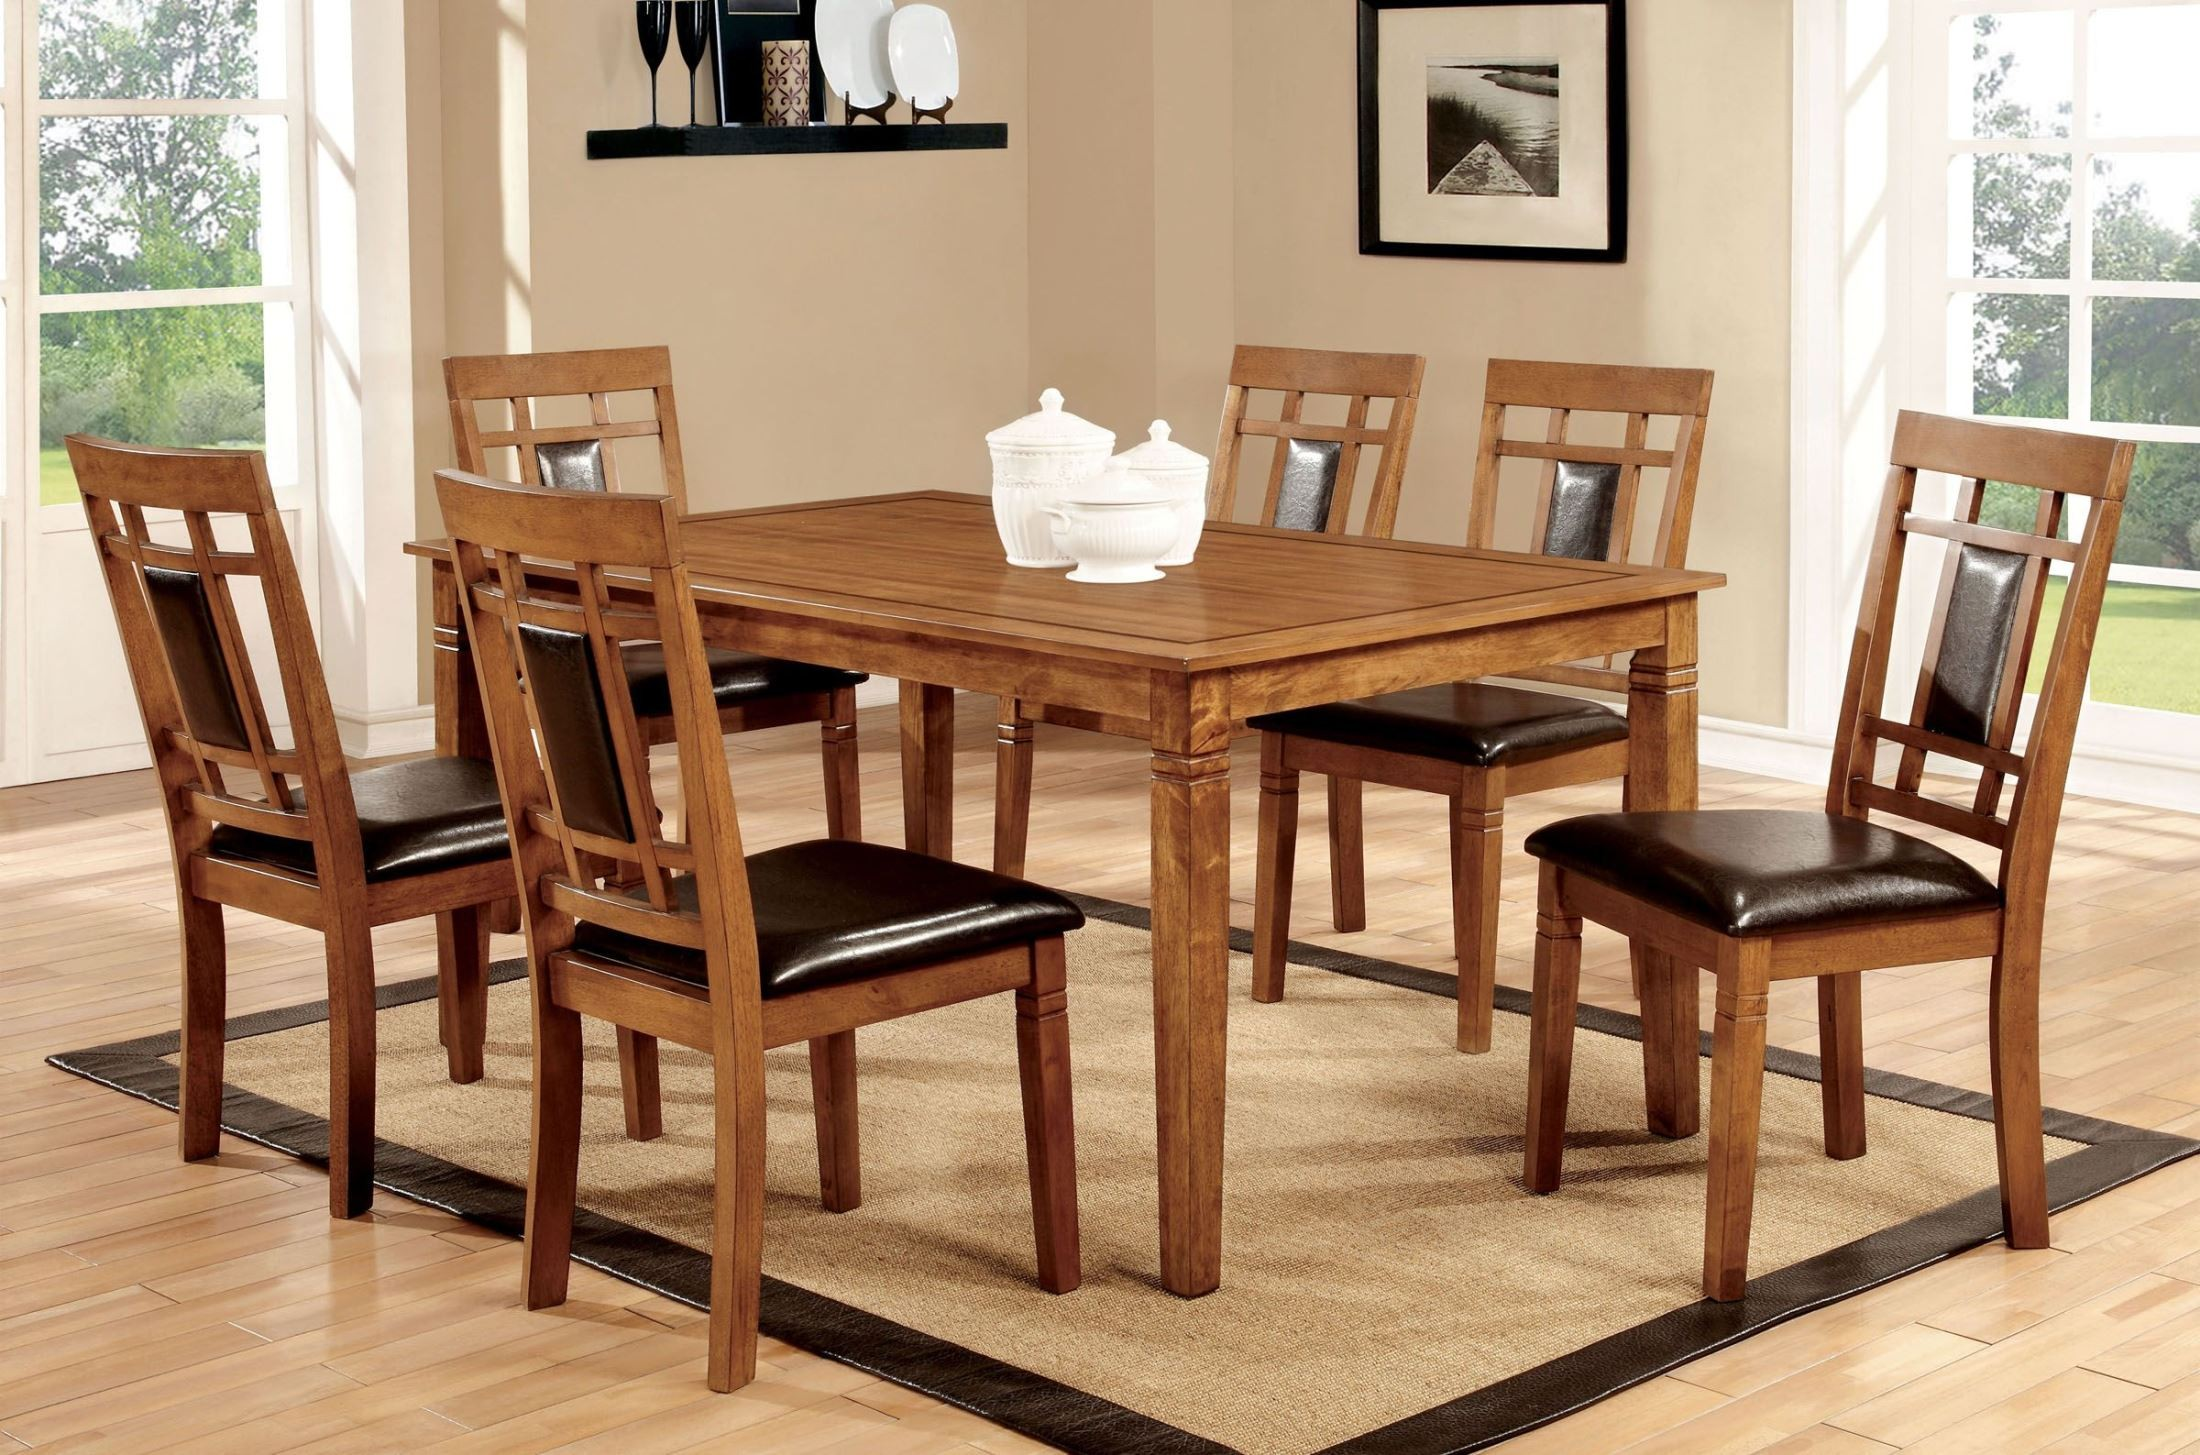 Oak dining room furniture sets